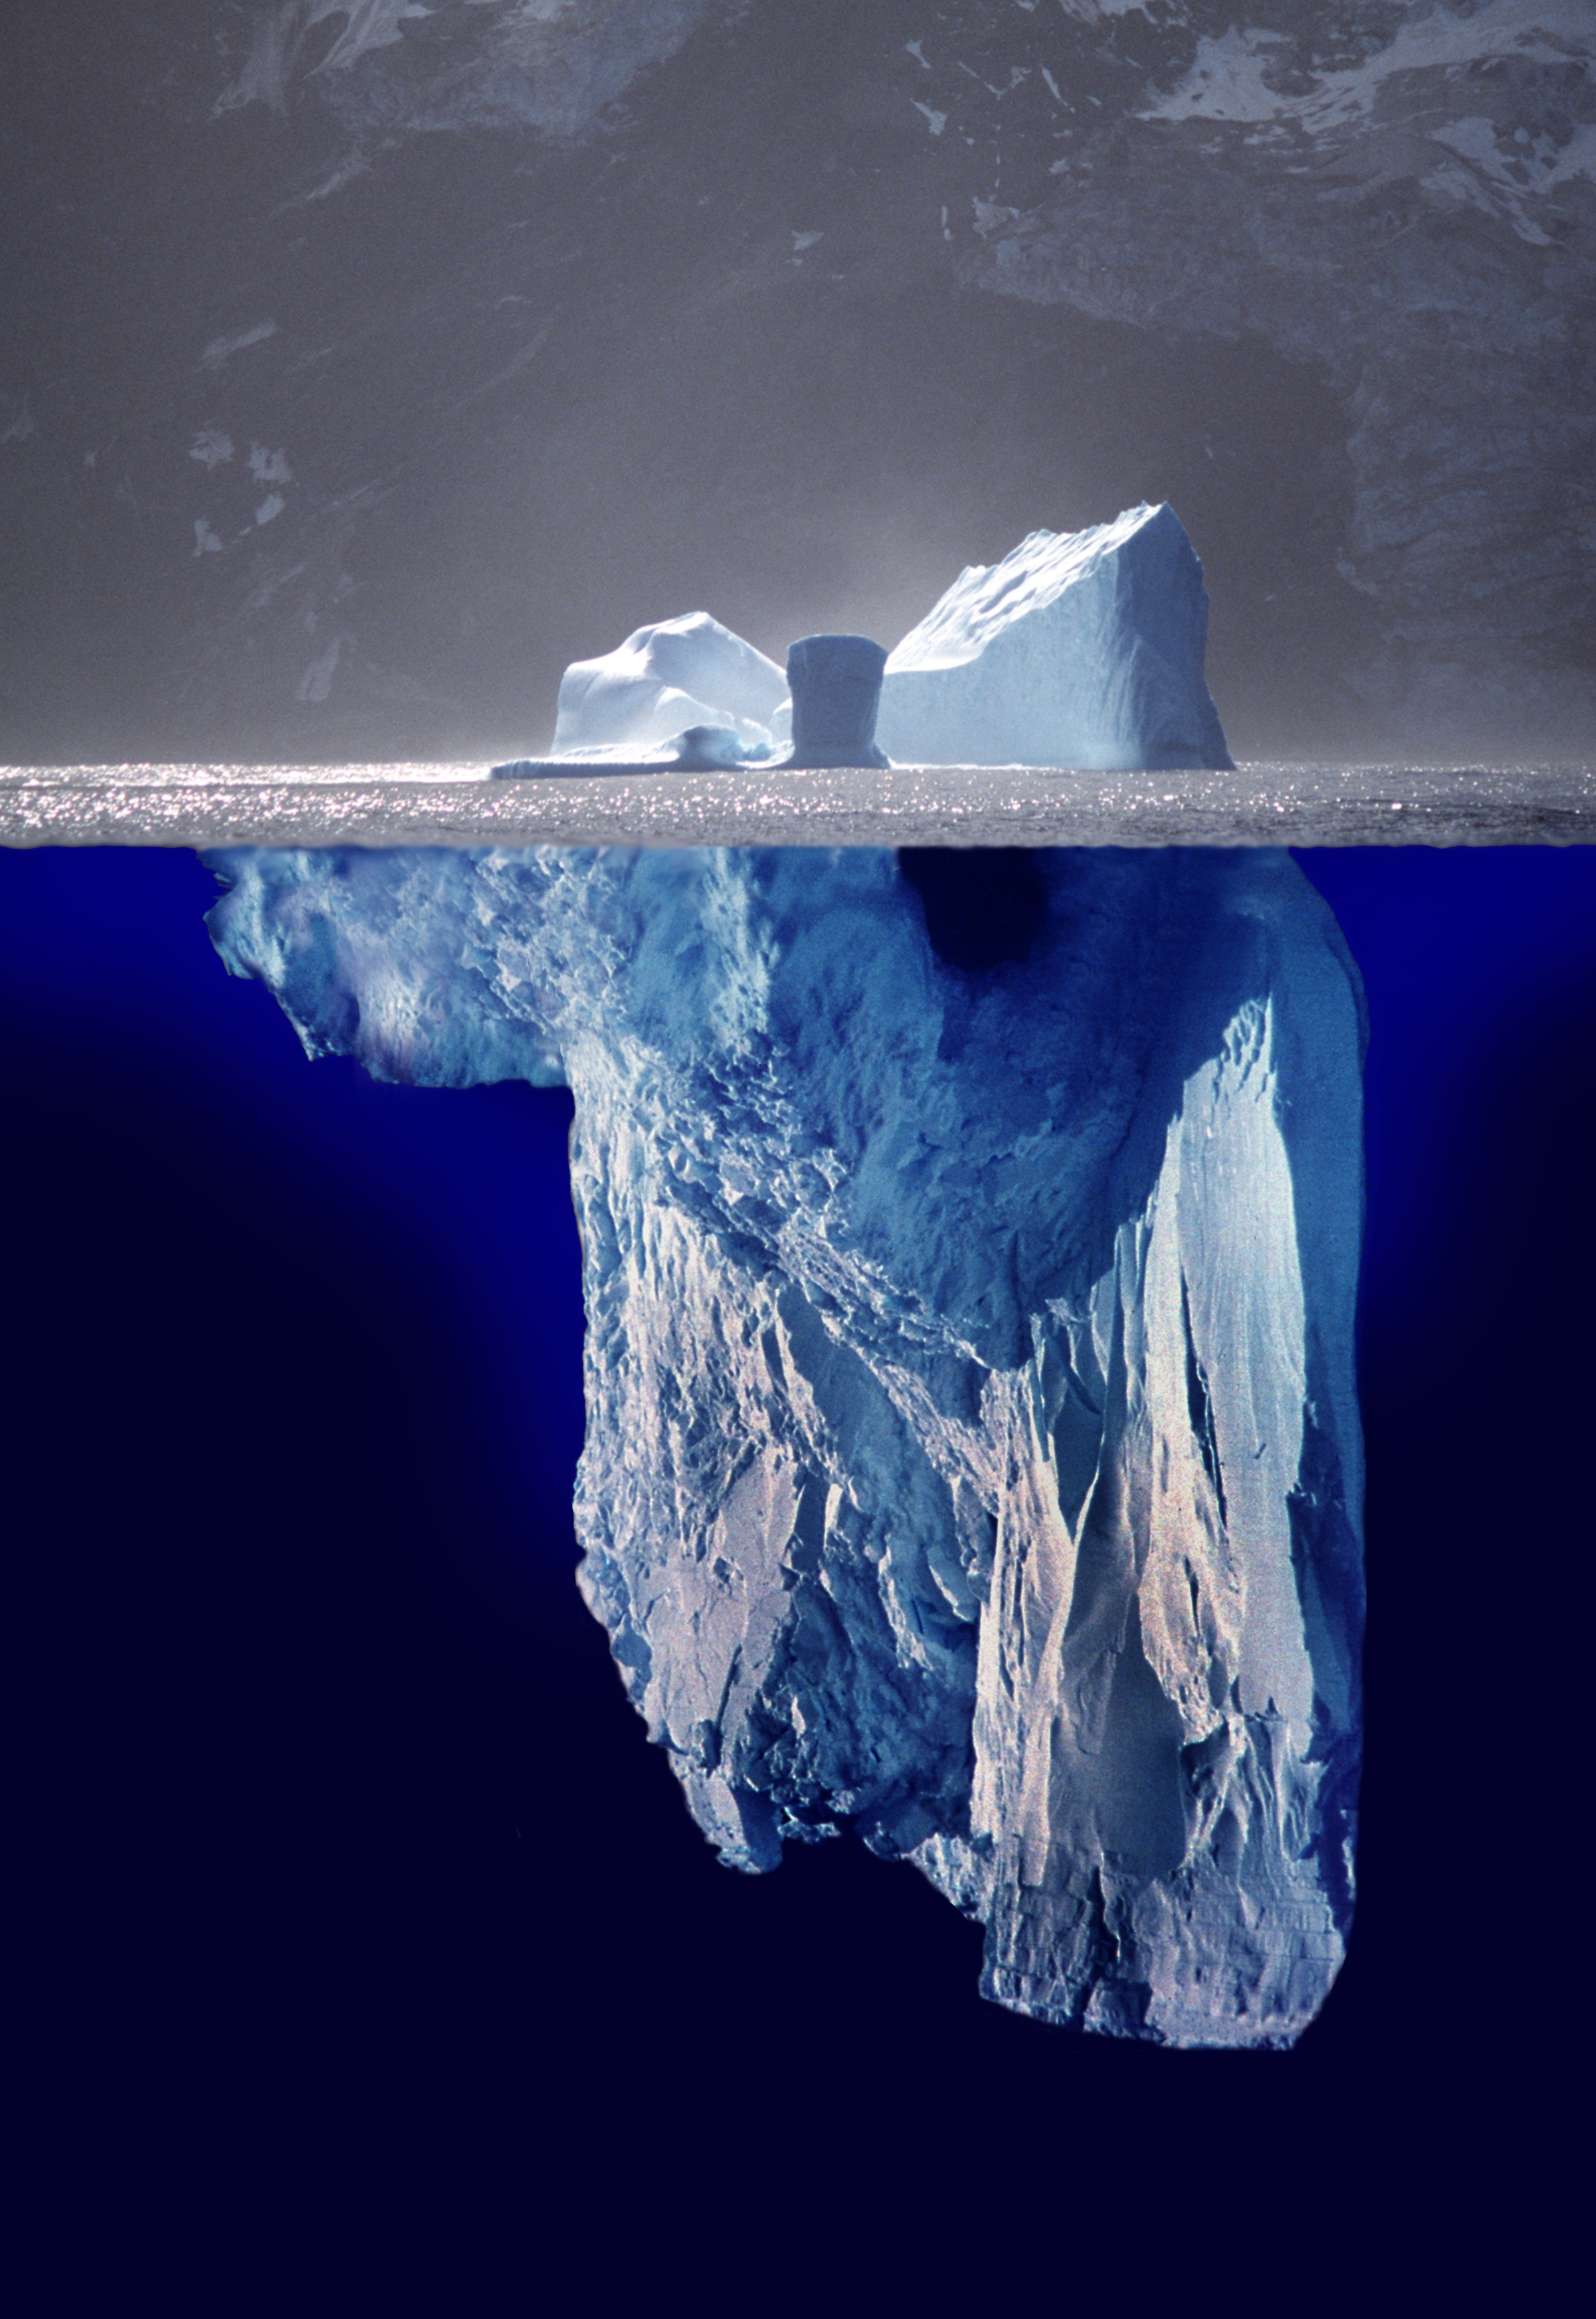 A photomontage of what a whole iceberg might l...